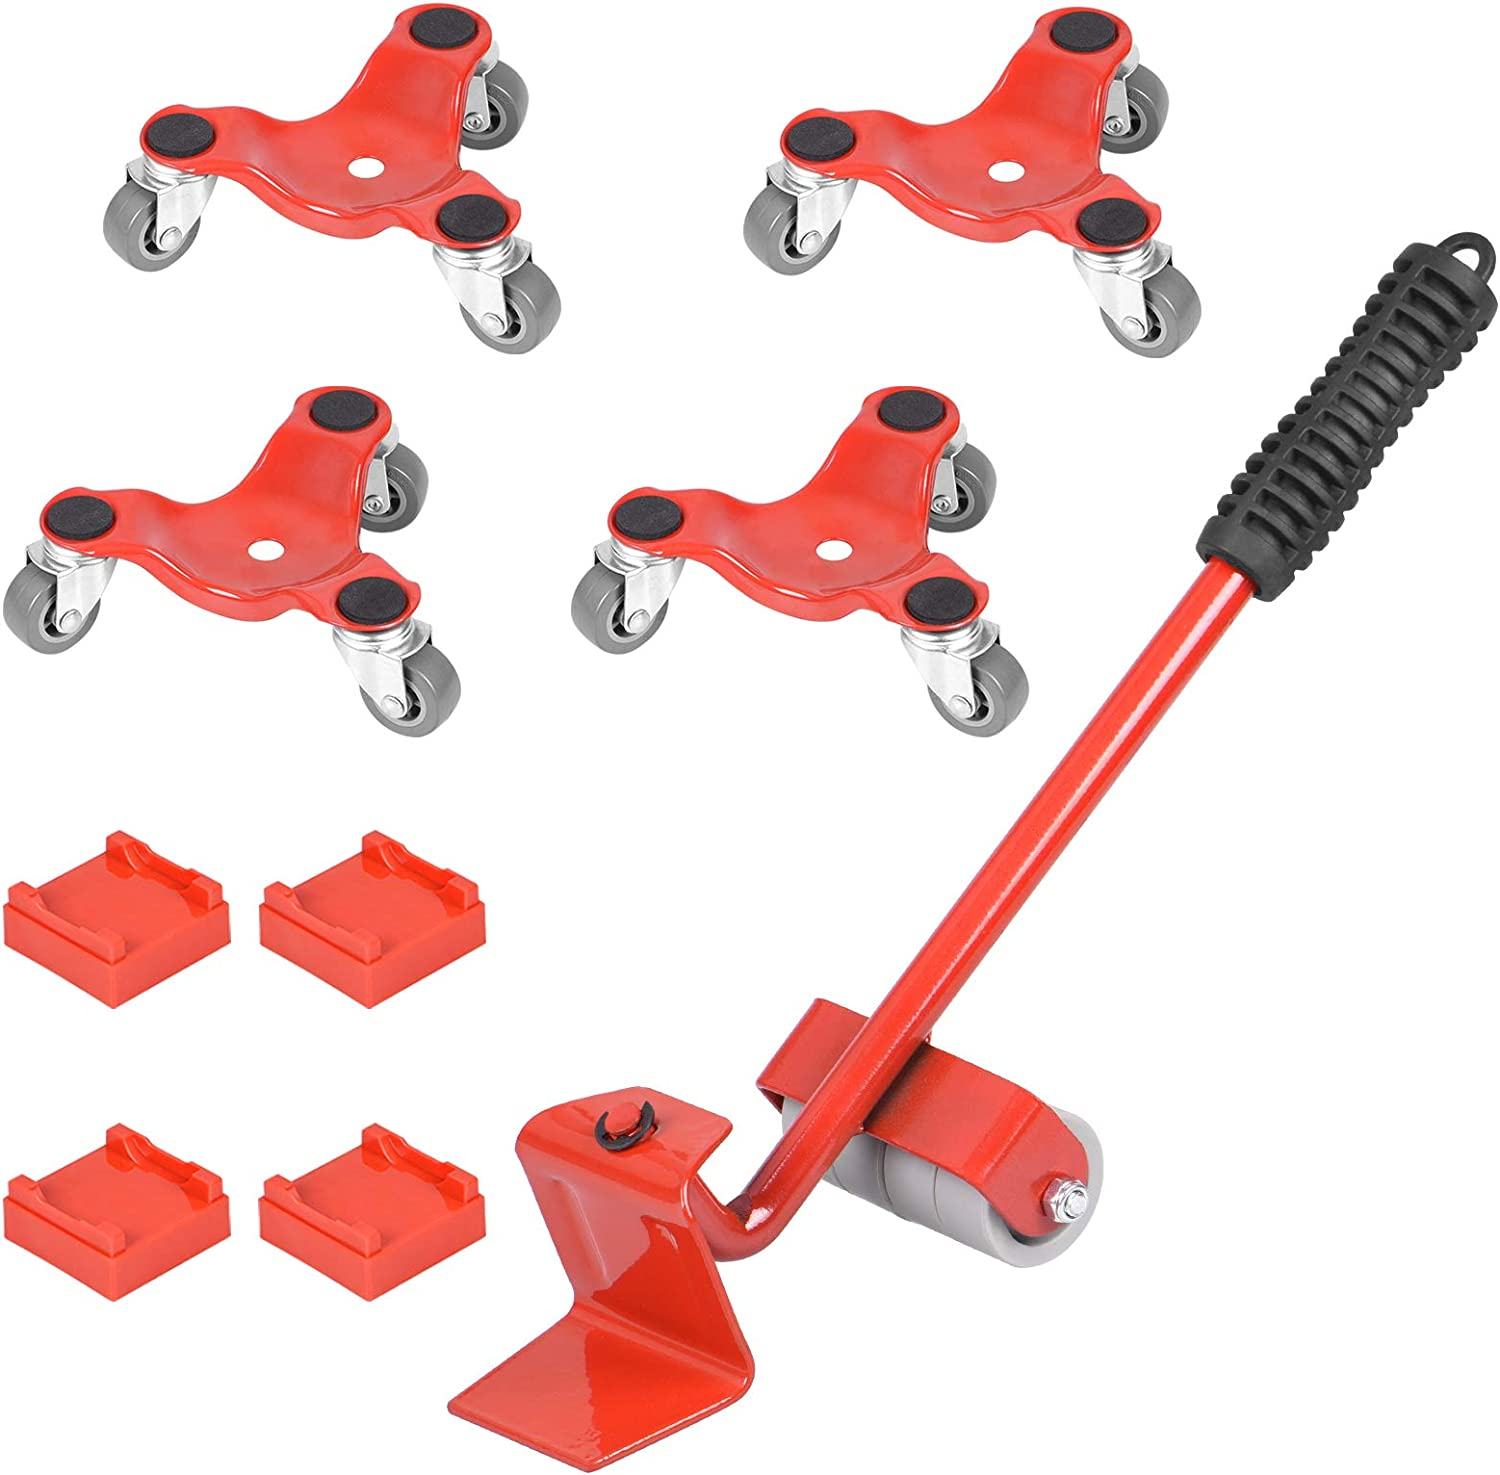 9 Pack Furniture Dolly Set, STRAWBLEAG Furniture Mover & Lifter Kit, 4 Pack Tri-Dolly with Lifter for Easy Moving Bulky & Heavy Loads in Home, Shop or Garage, Total 9 Pack 440-lb Load Capacity